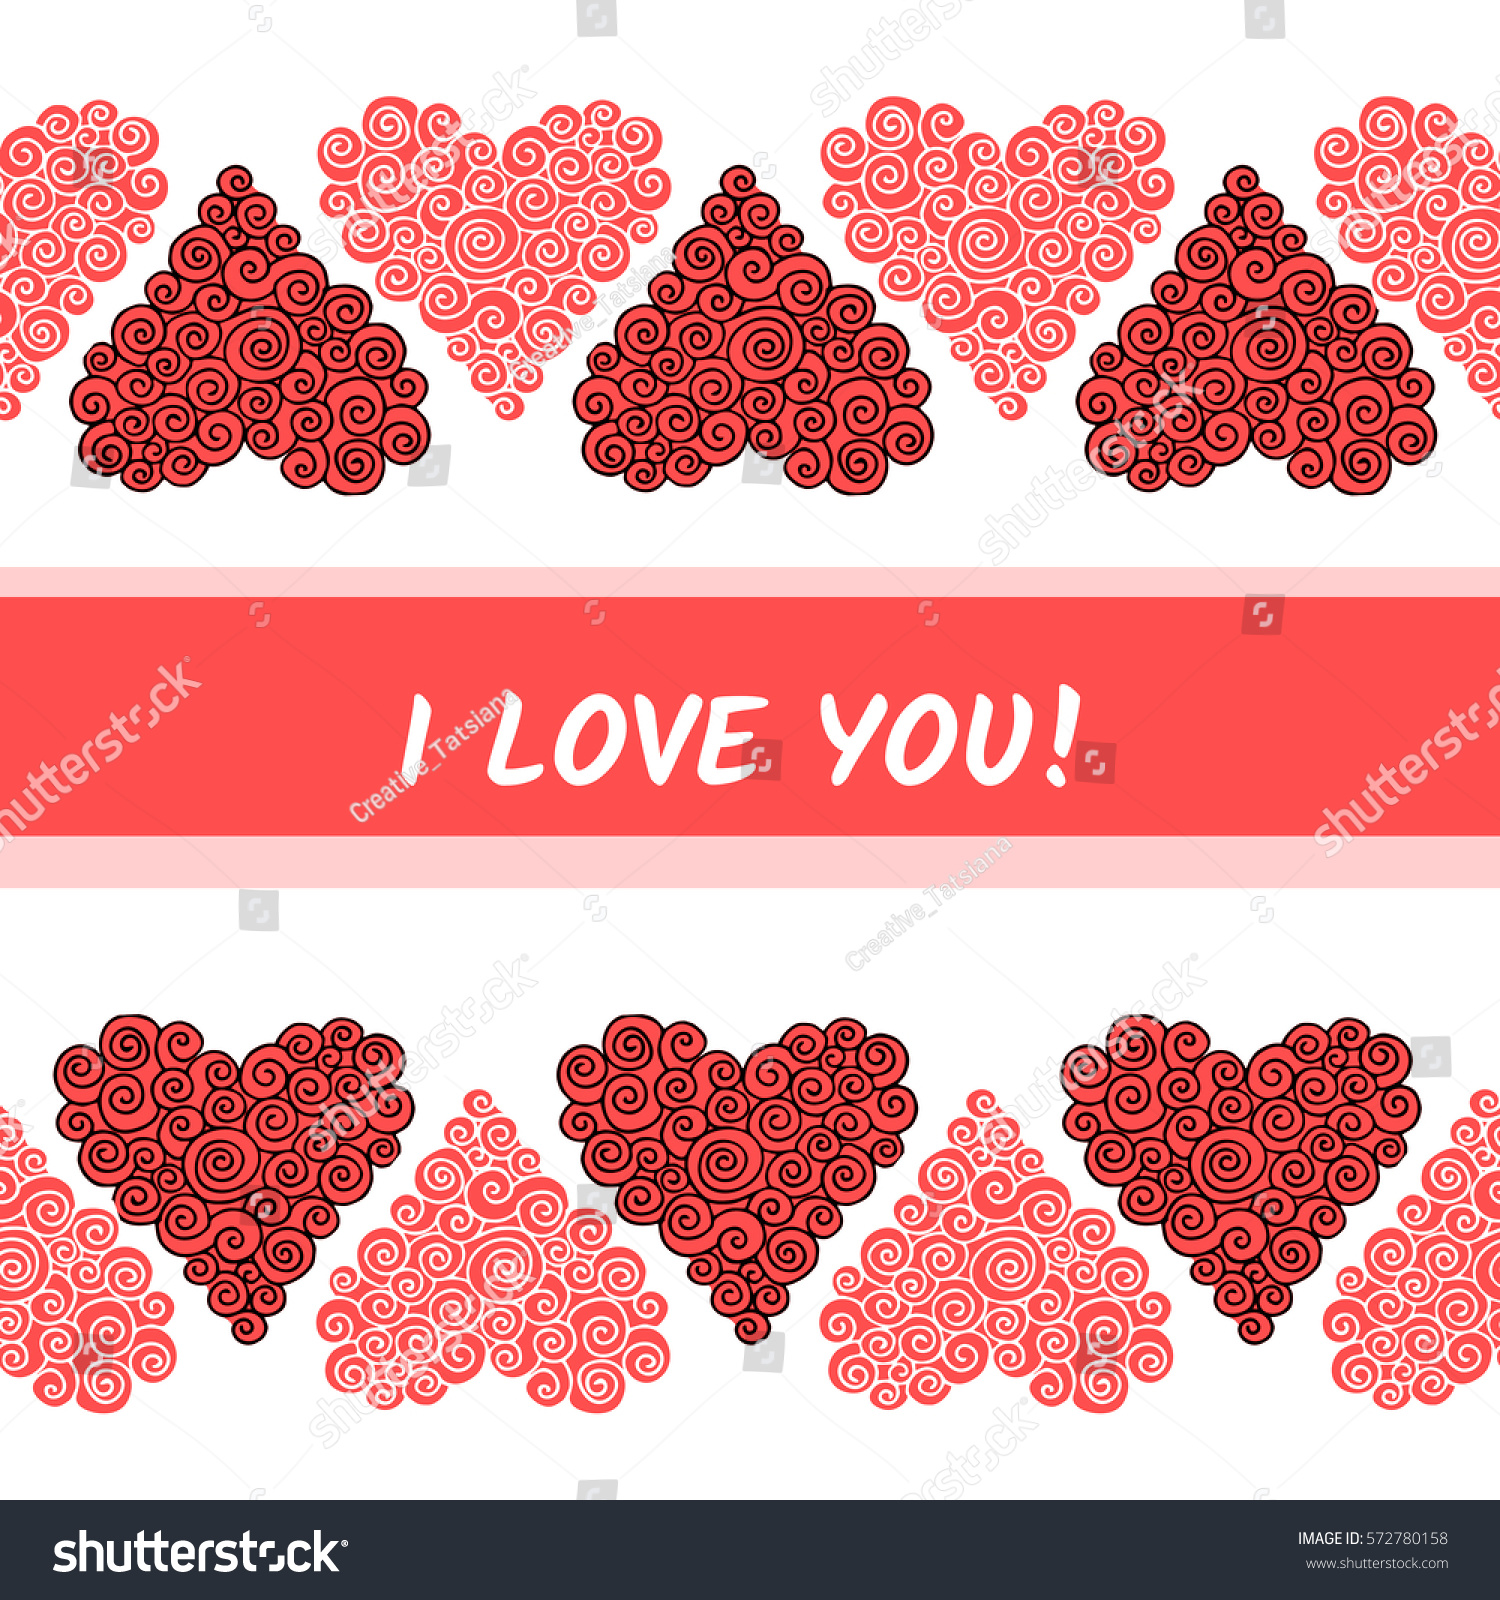 greeting card template pink red curly stock illustration 572780158